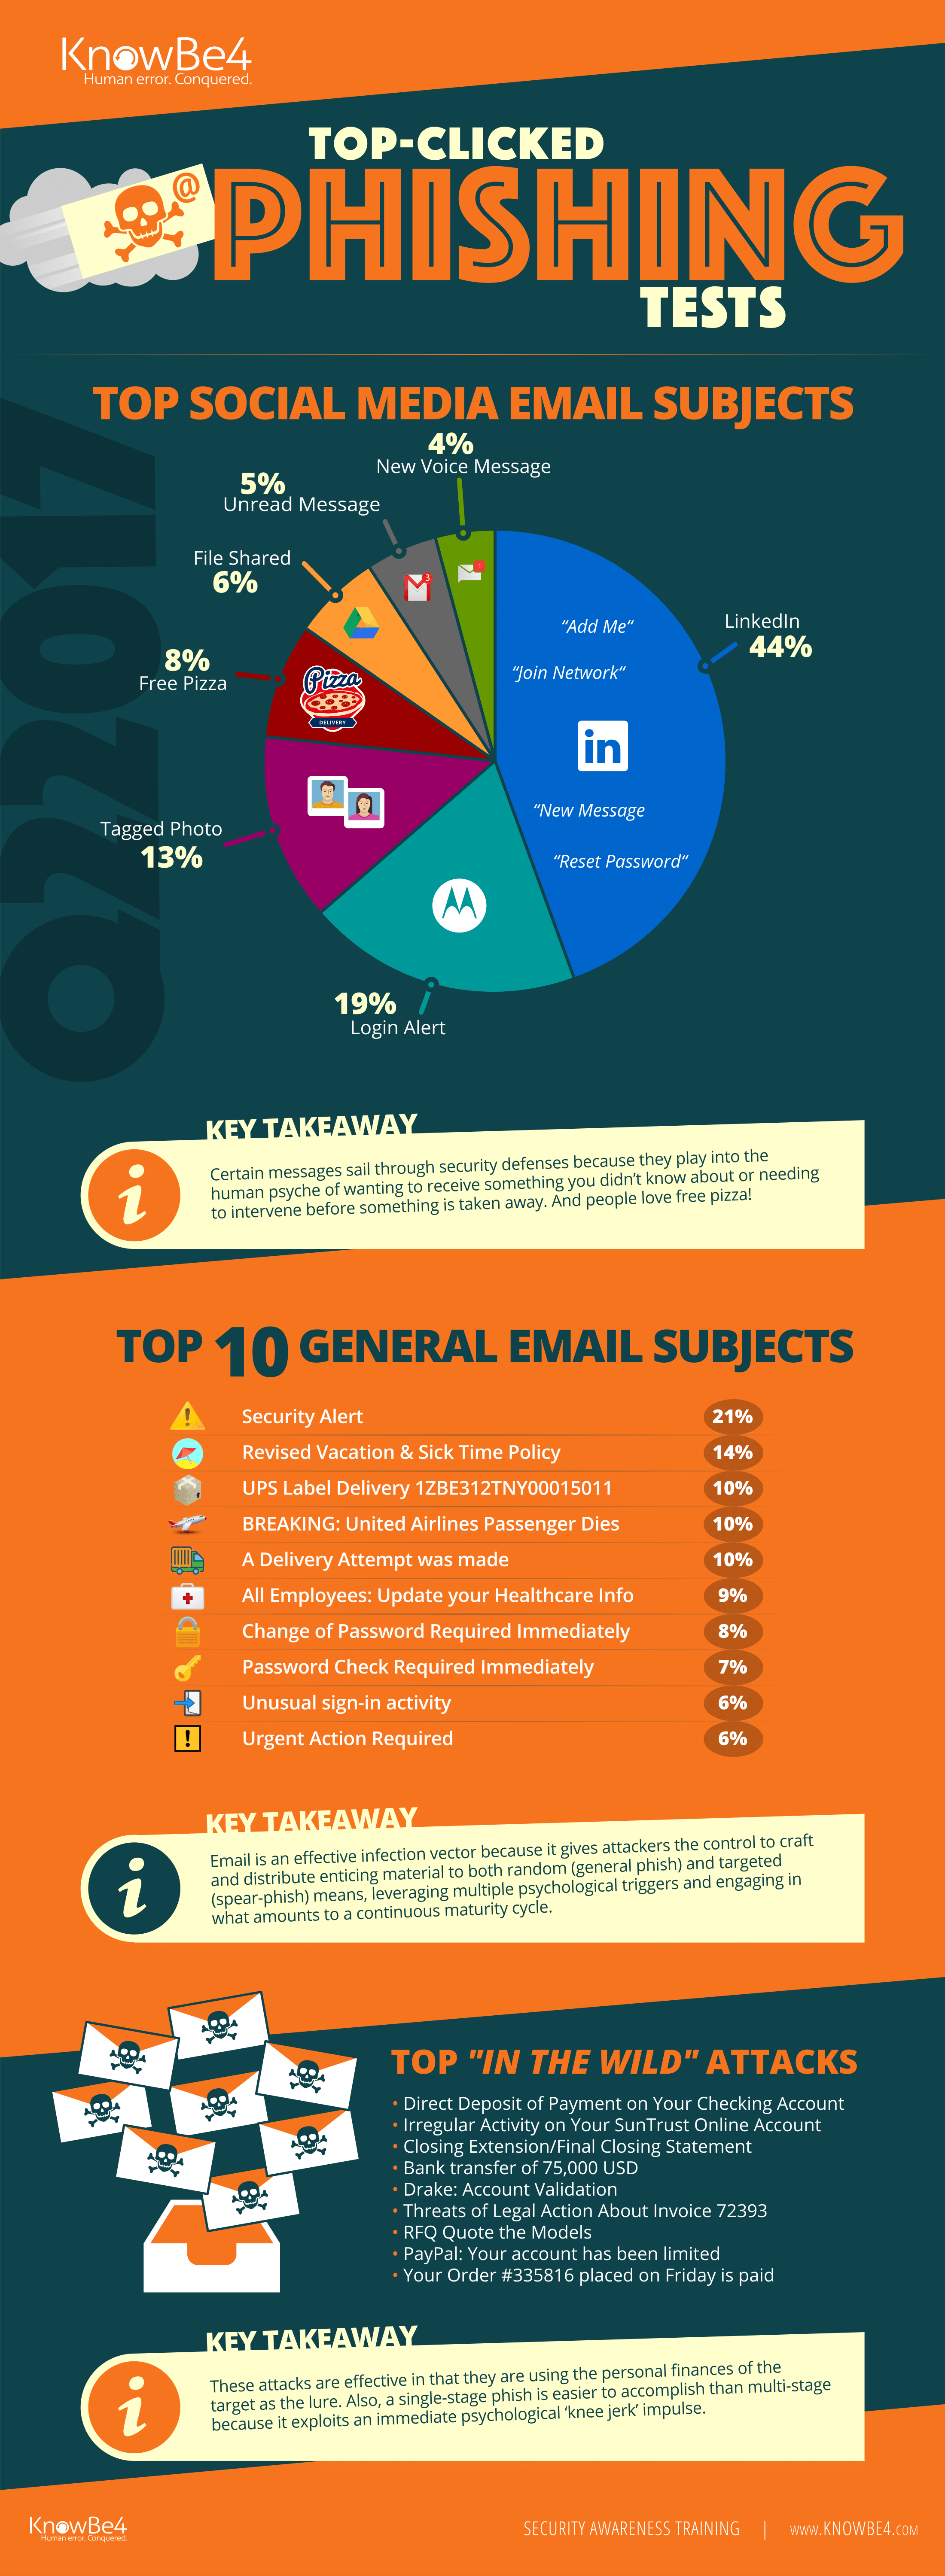 Q2-2017-Top-Clicked-Phishing-Emails